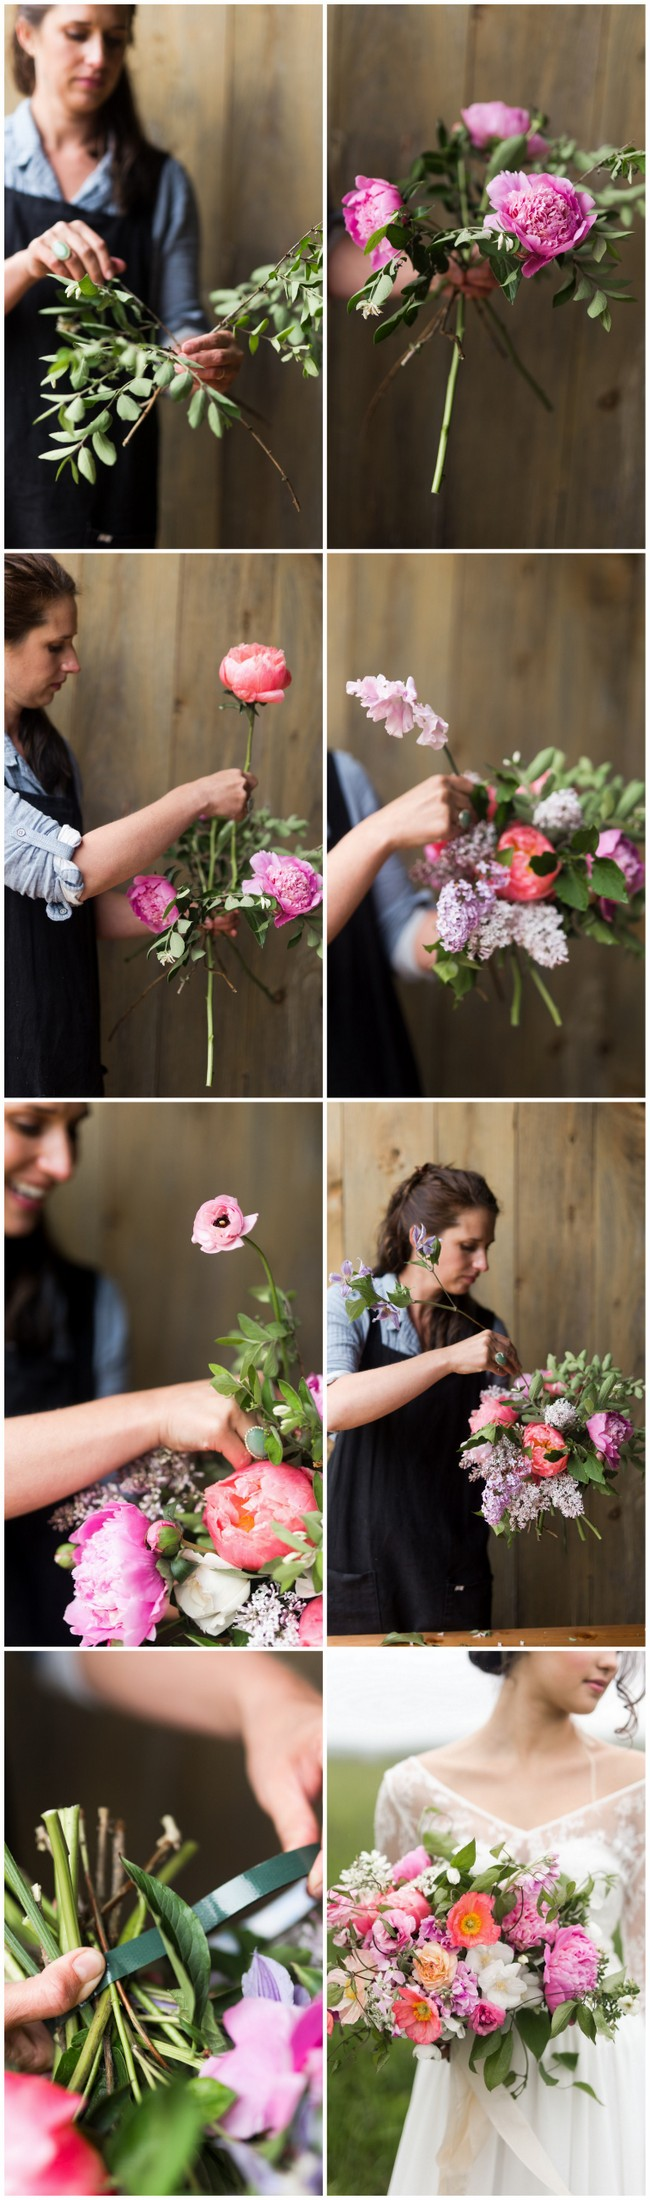 Learn how to make a lush hand tied garden bouquet. Tutorial with full instructions, flower names + photos, using peonies, ranunculus, clematis + poppies.